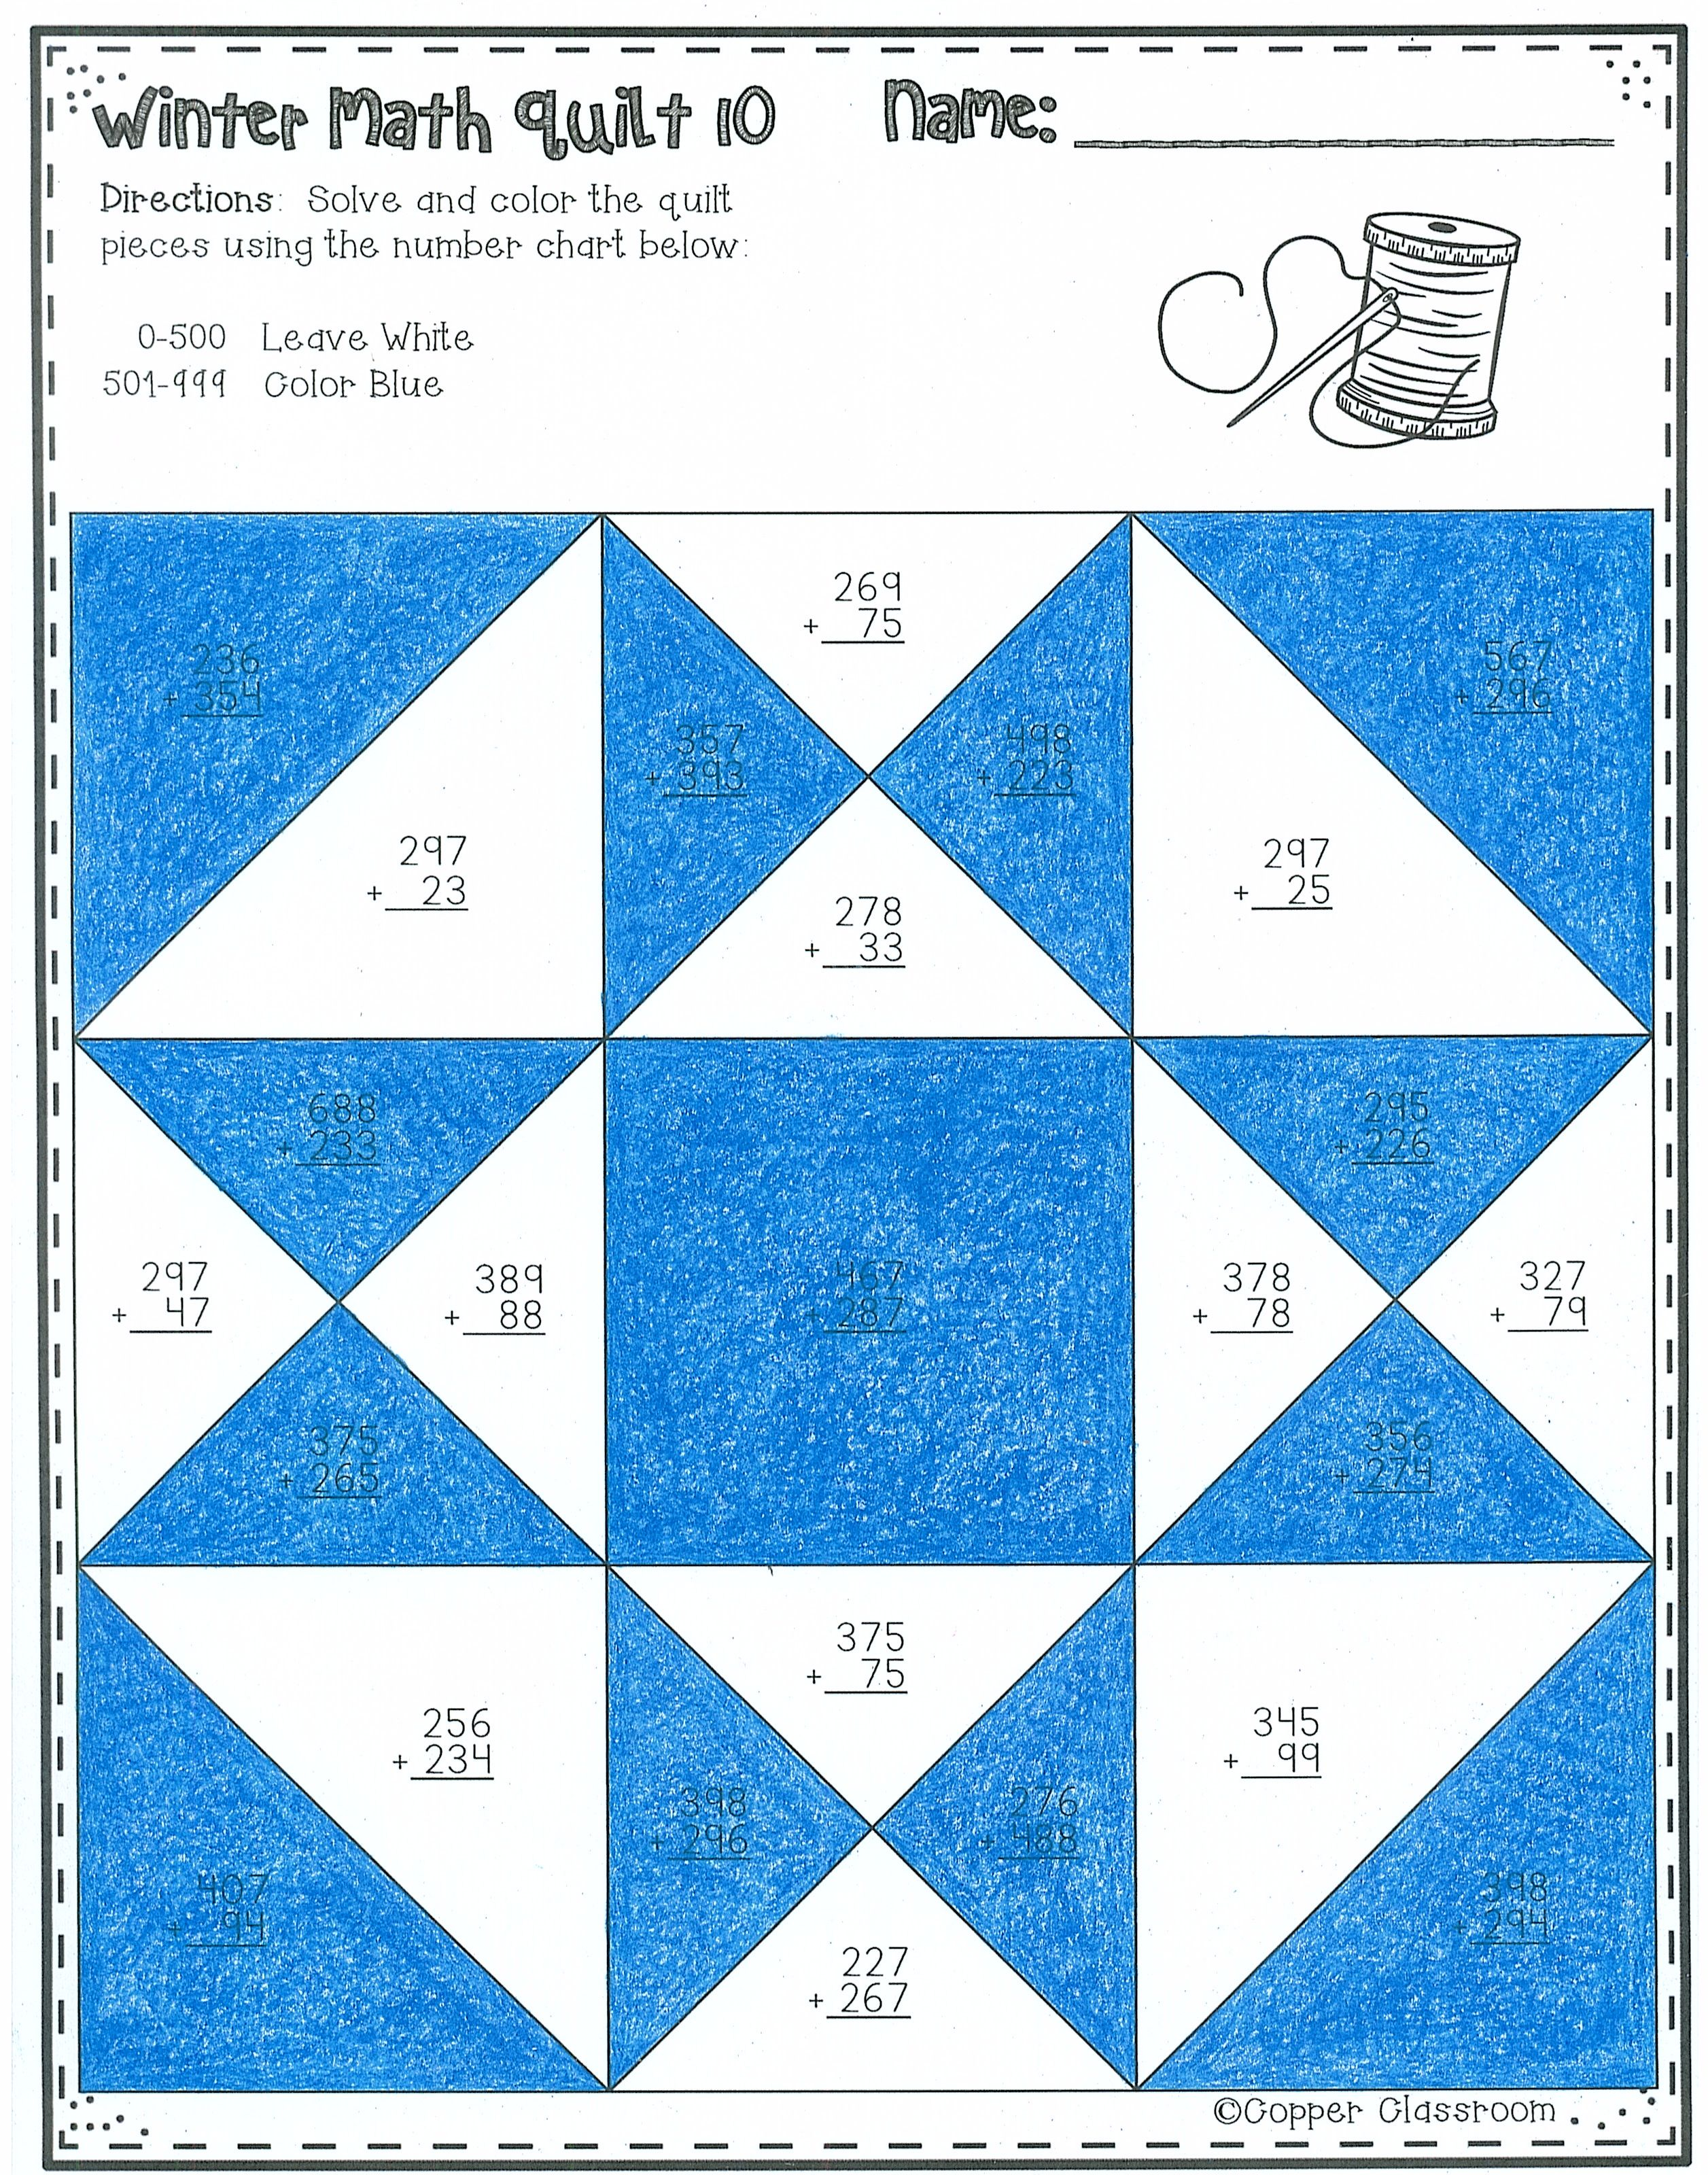 Addition Subtraction Multiplication And Division Math Quilts Quilts Math Math Division [ 3200 x 2513 Pixel ]